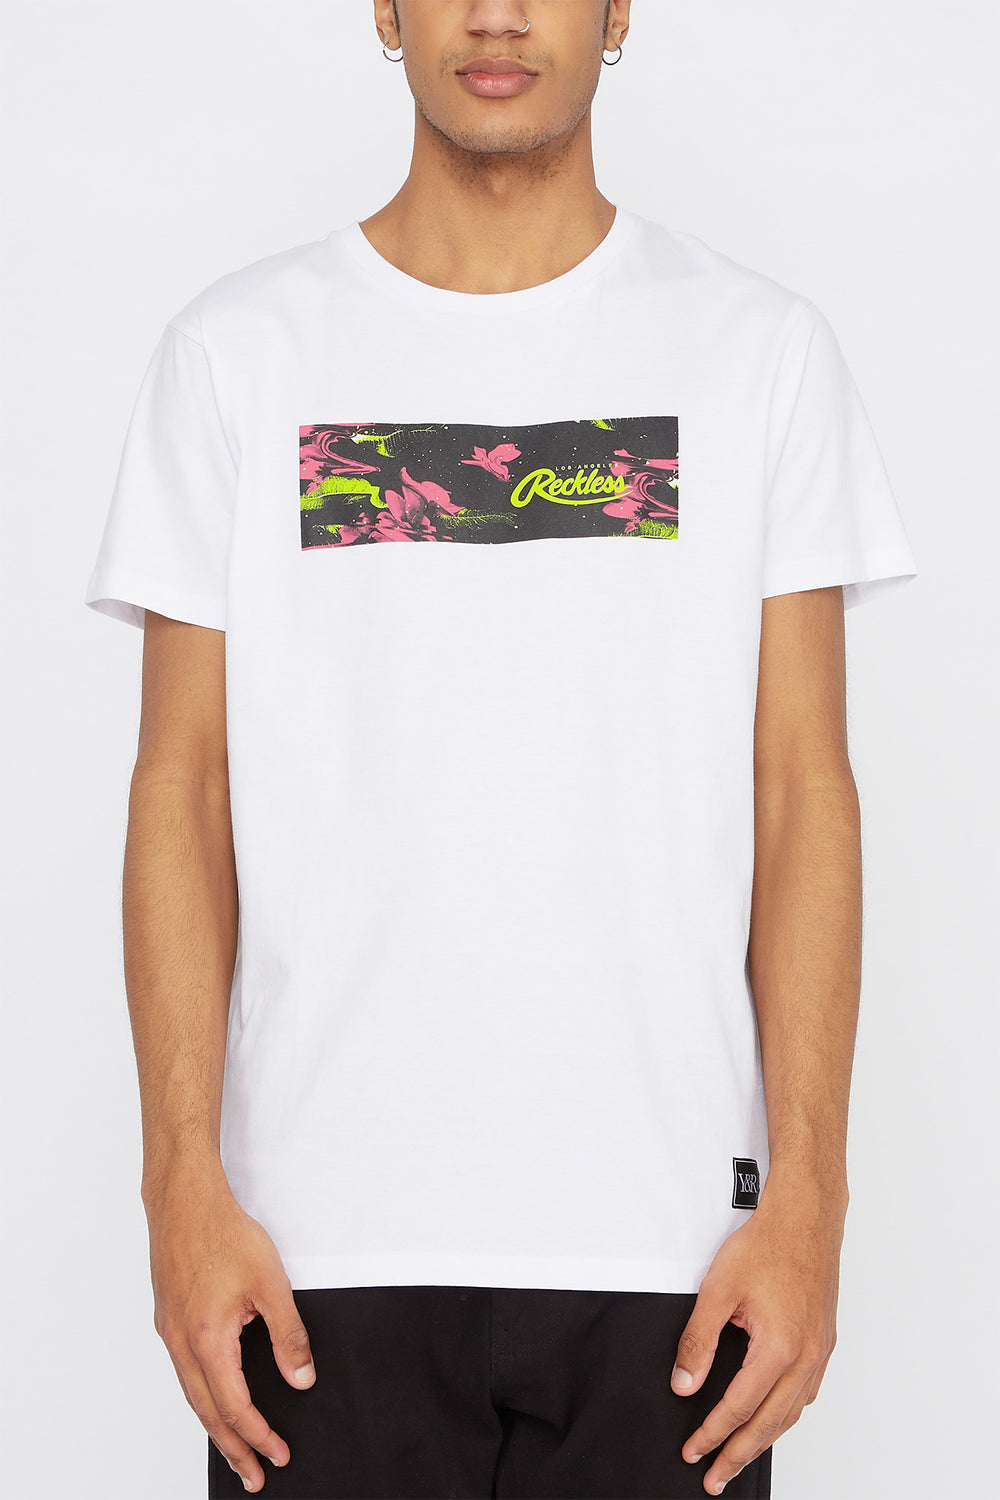 T-Shirt Floral Électrique Young & Reckless Homme Blanc